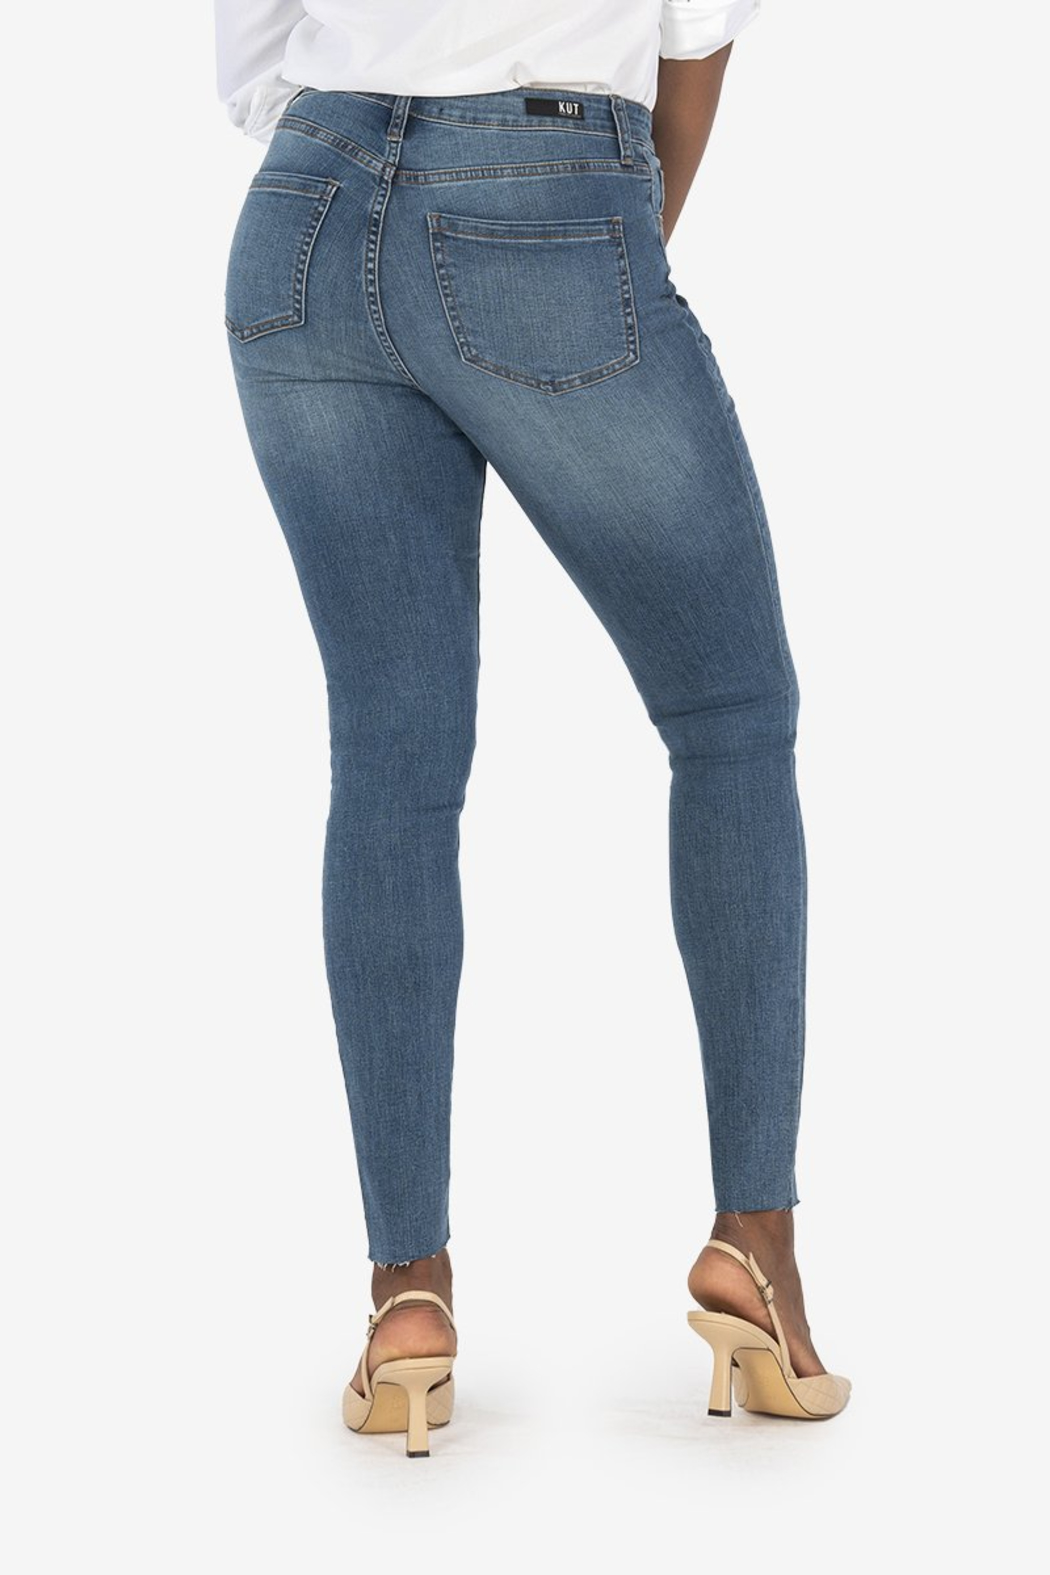 Kut from the Kloth Mia H/R Ankle Skinny - Side Cropped Image